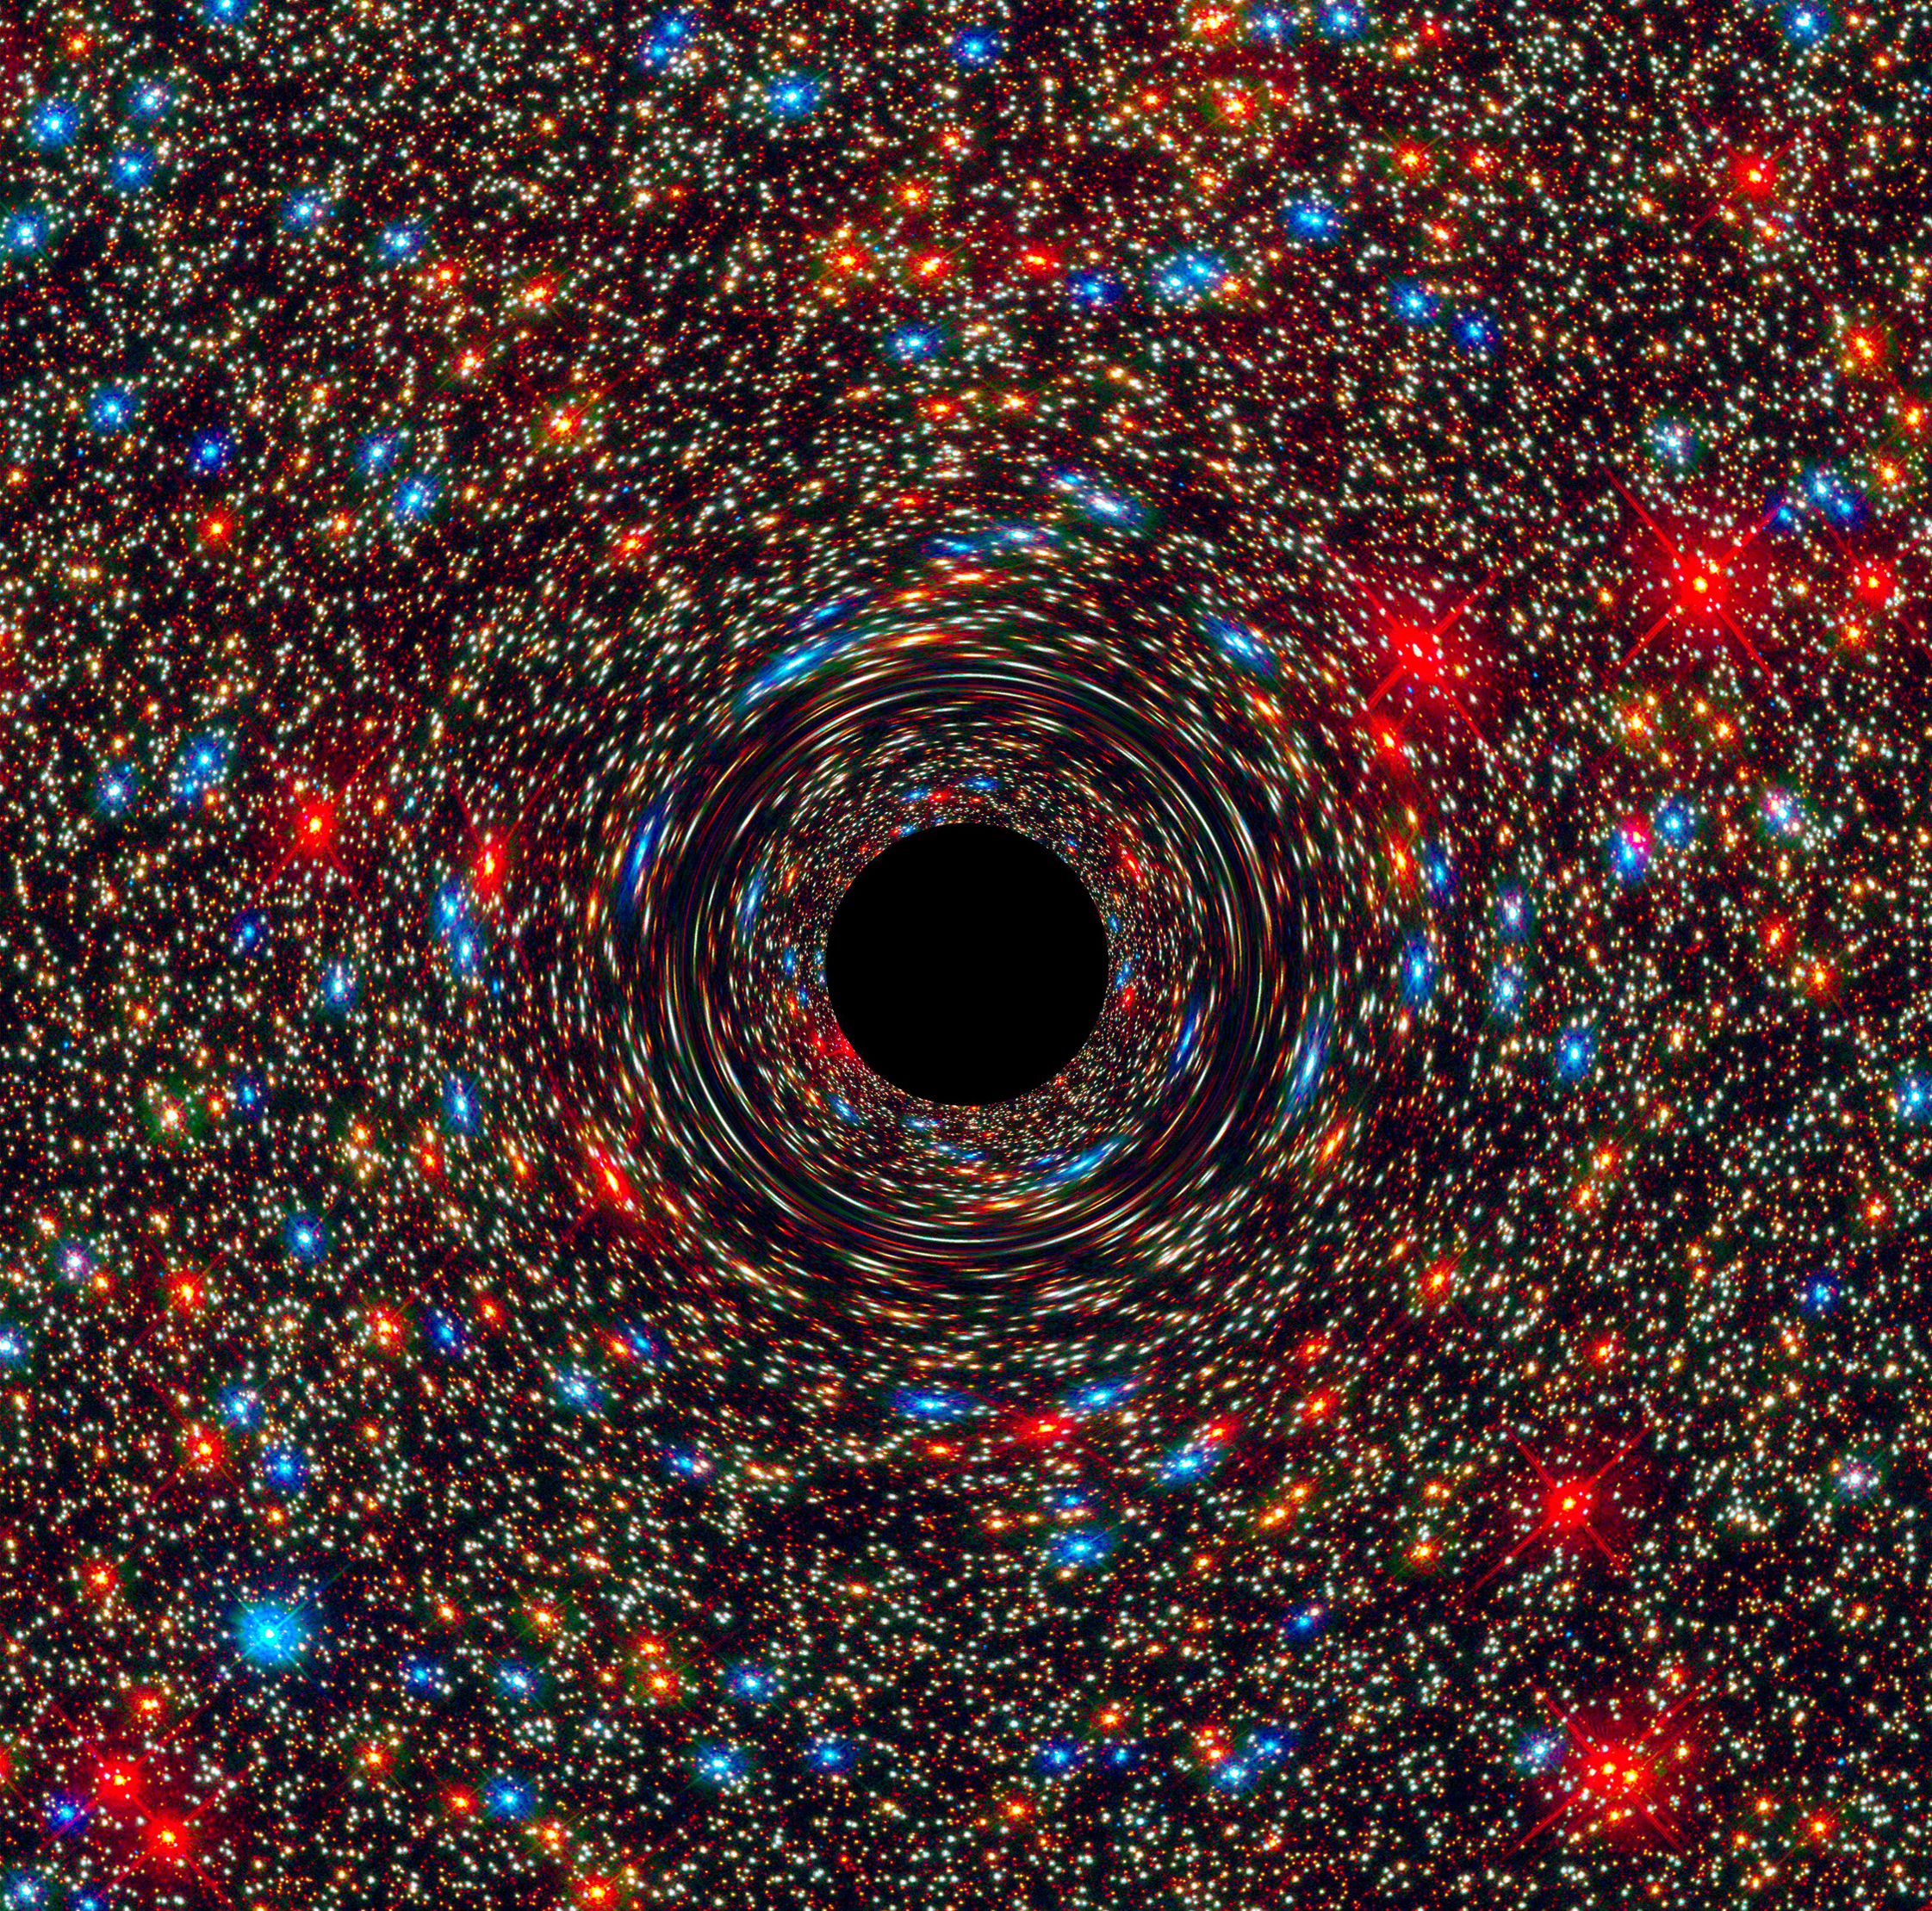 This computer-simulated image shows a supermassive black hole at the core of a galaxy. The black region in the center represents the black hole's event horizon, where no light can escape the massive object's gravitational grip. The black hole's powerful gravity distorts space around it like a funhouse mirror. Light from background stars is stretched and smeared as the stars skim by the black hole.  Credits: NASA, ESA, and D. Coe, J. Anderson, and R. van der Marel (STScI)